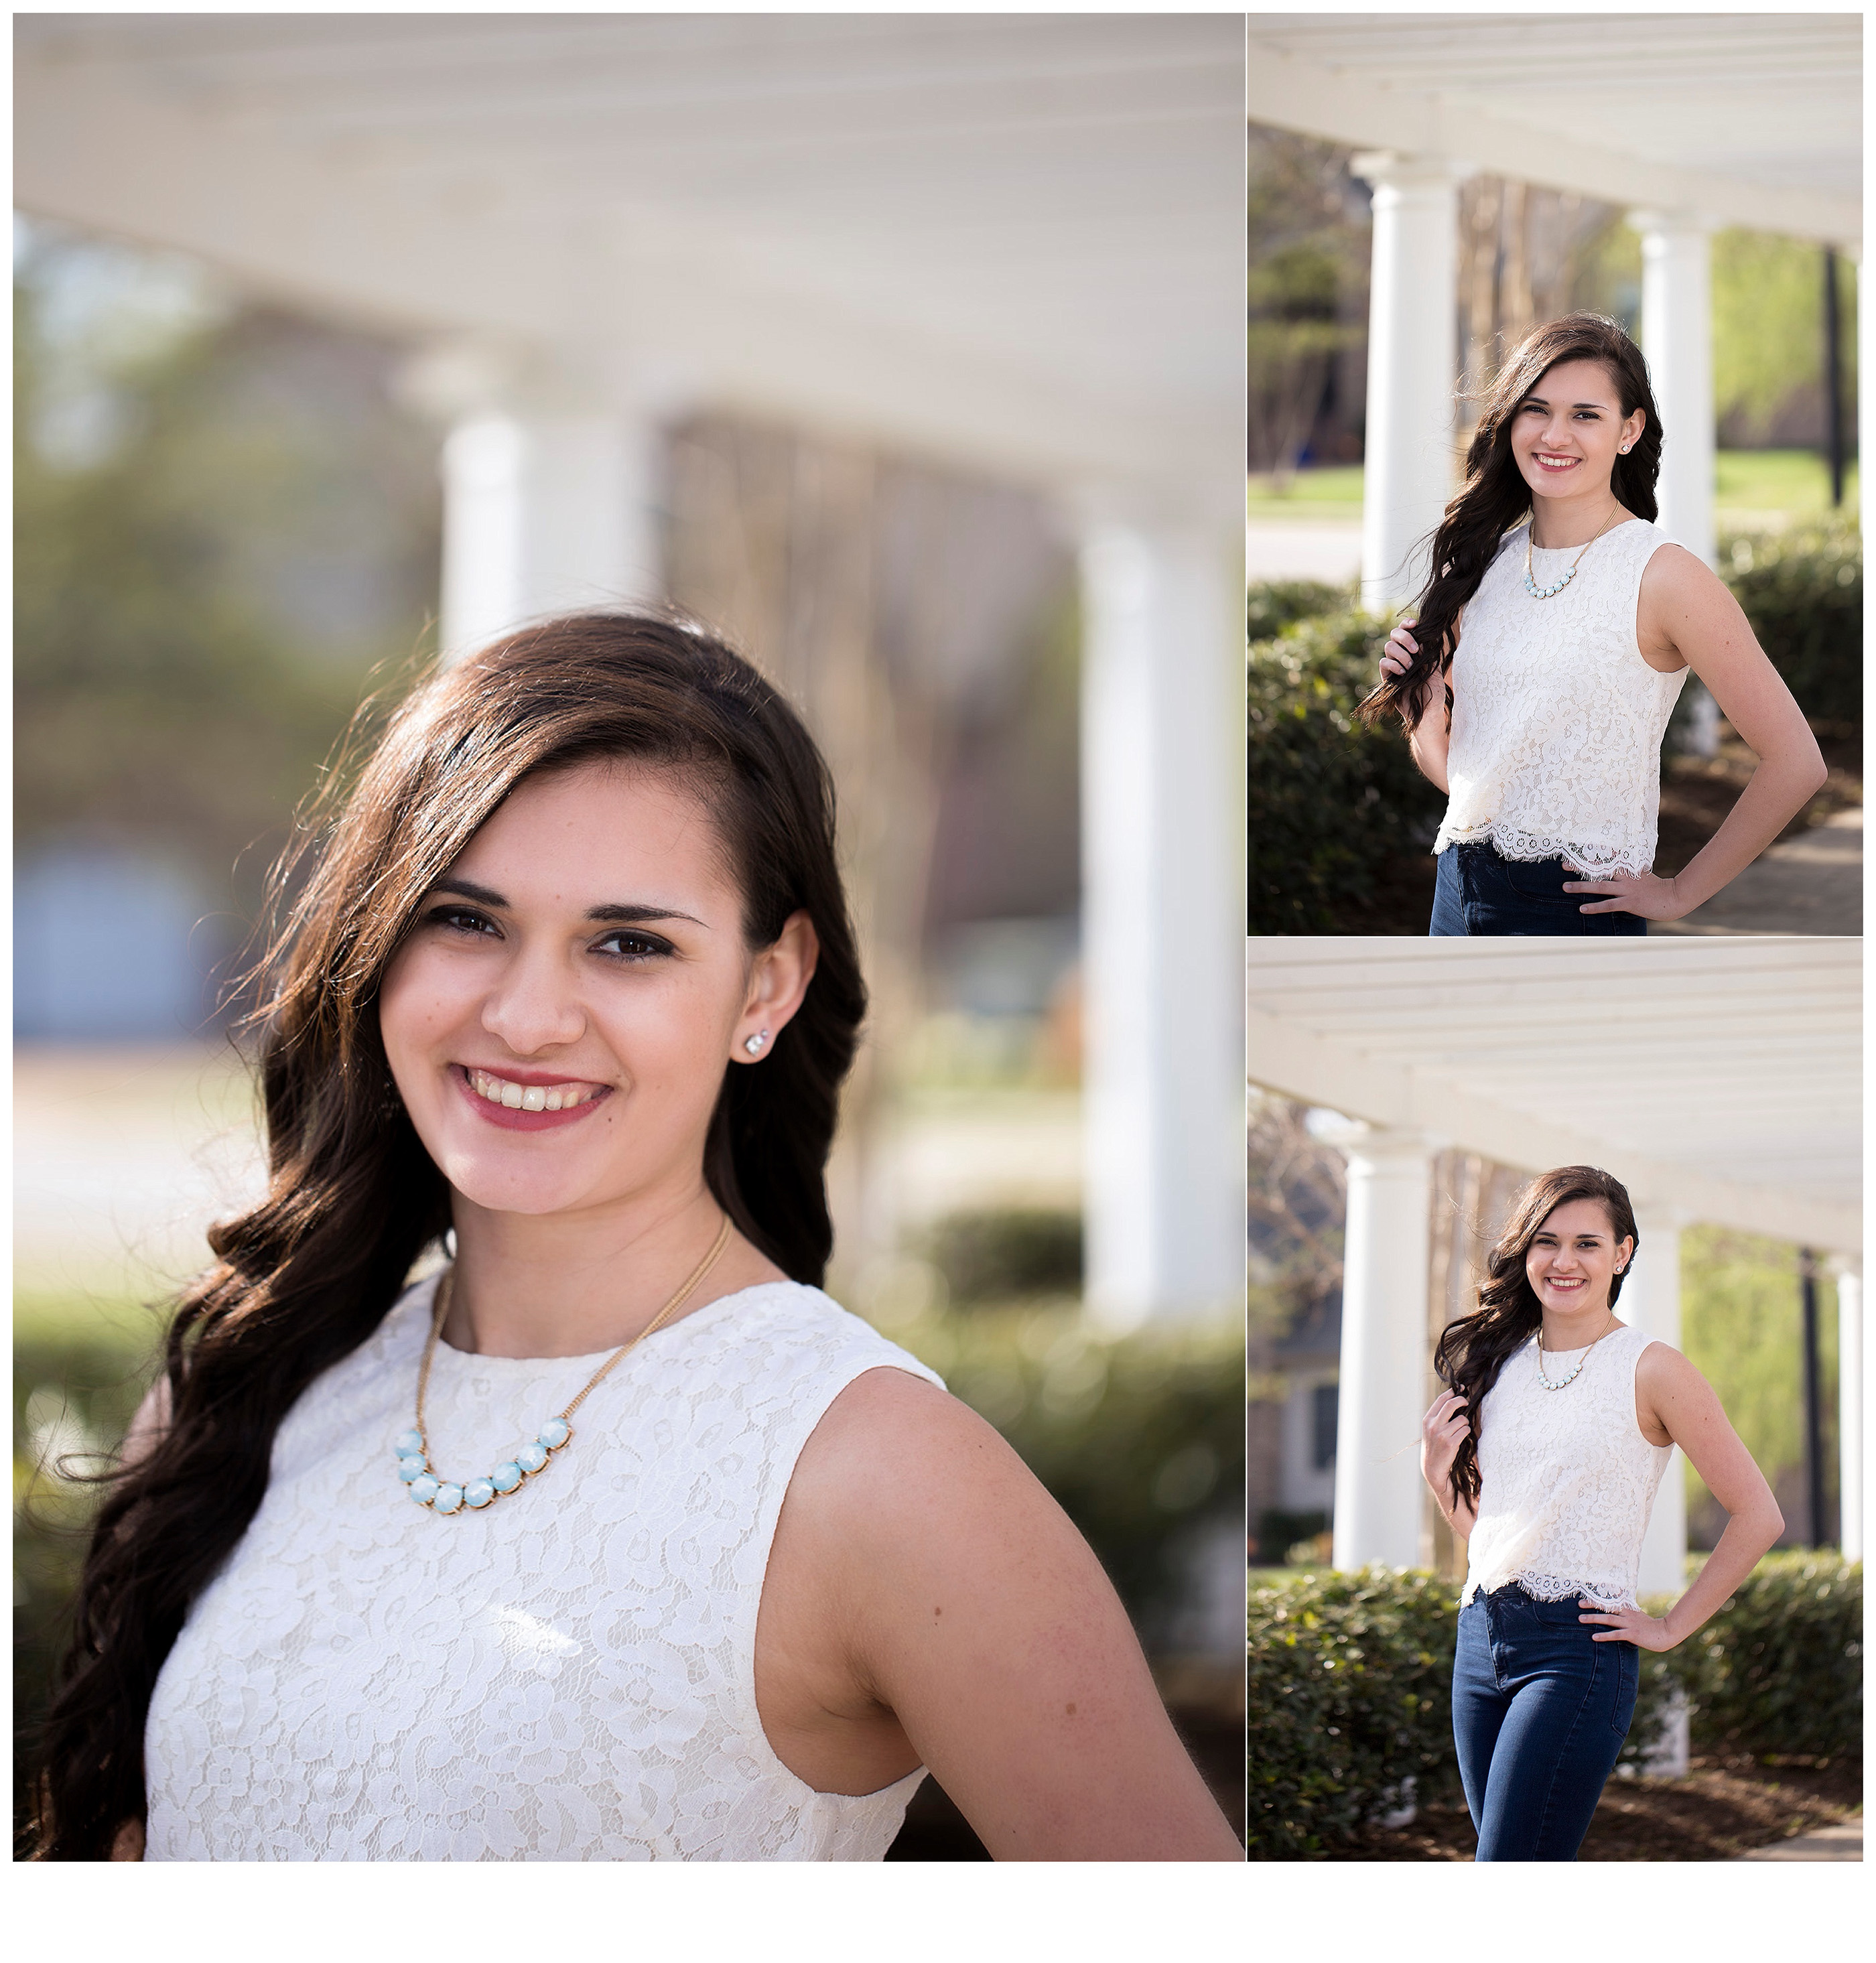 Makenzie-Senior_149 copy.jpg